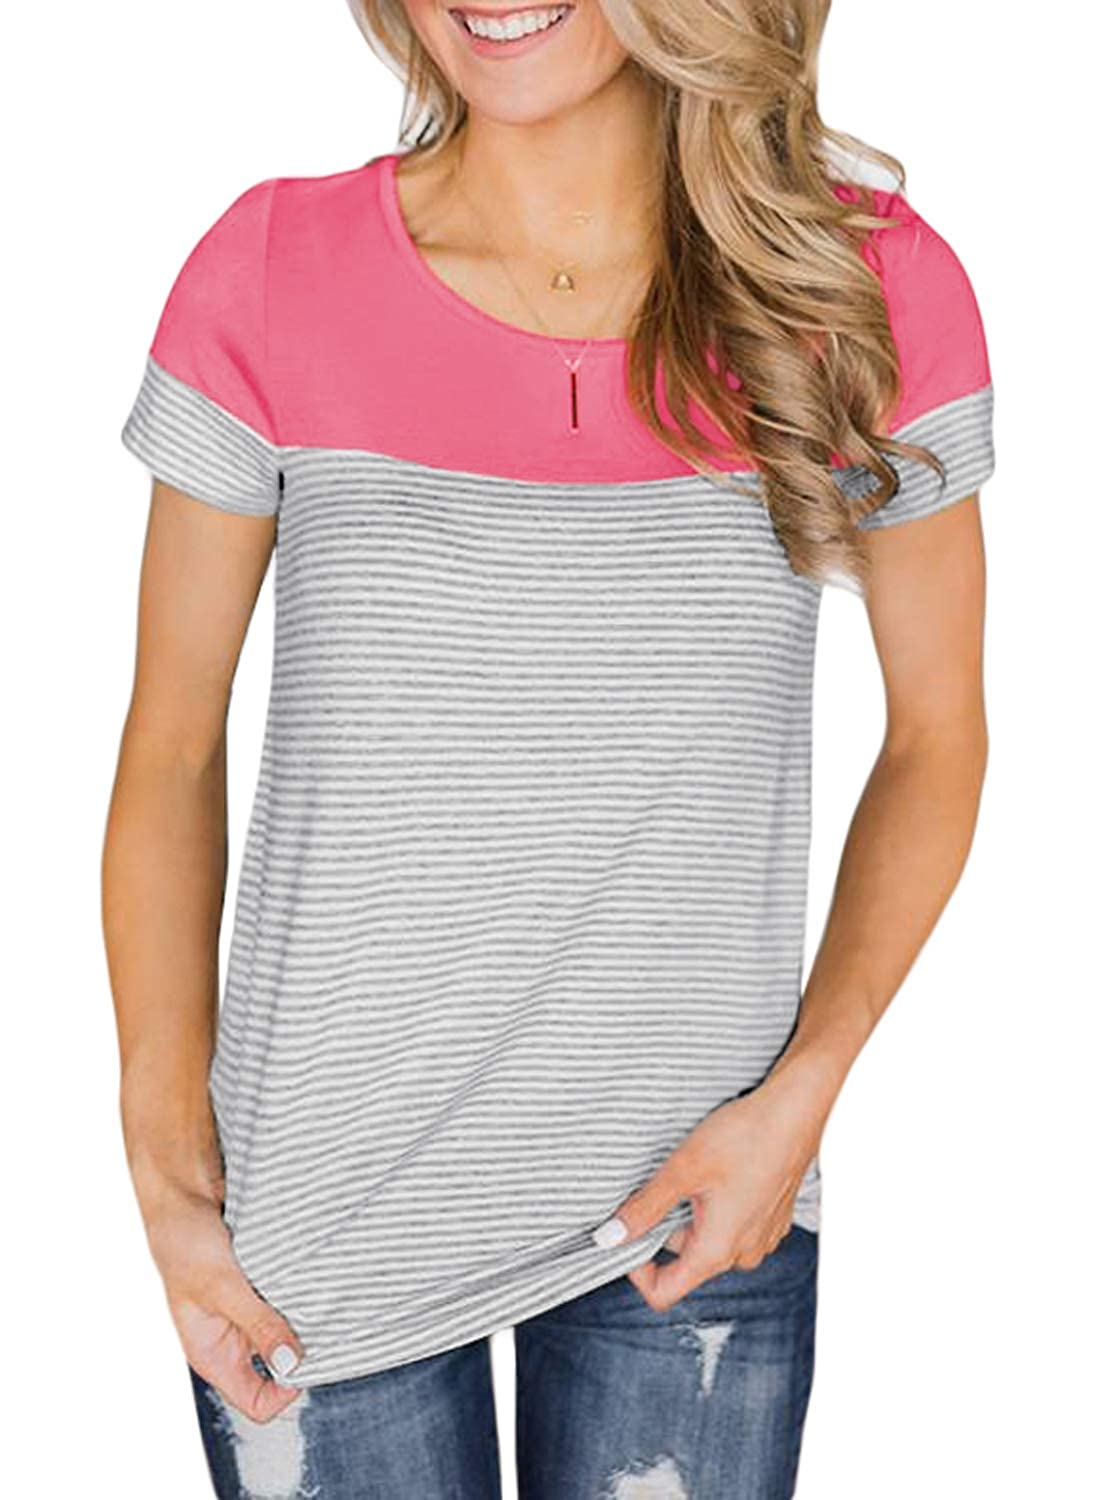 FIYOTE Womens Short Sleeve Striped T-Shirt Color Block Casual Blouse Tops